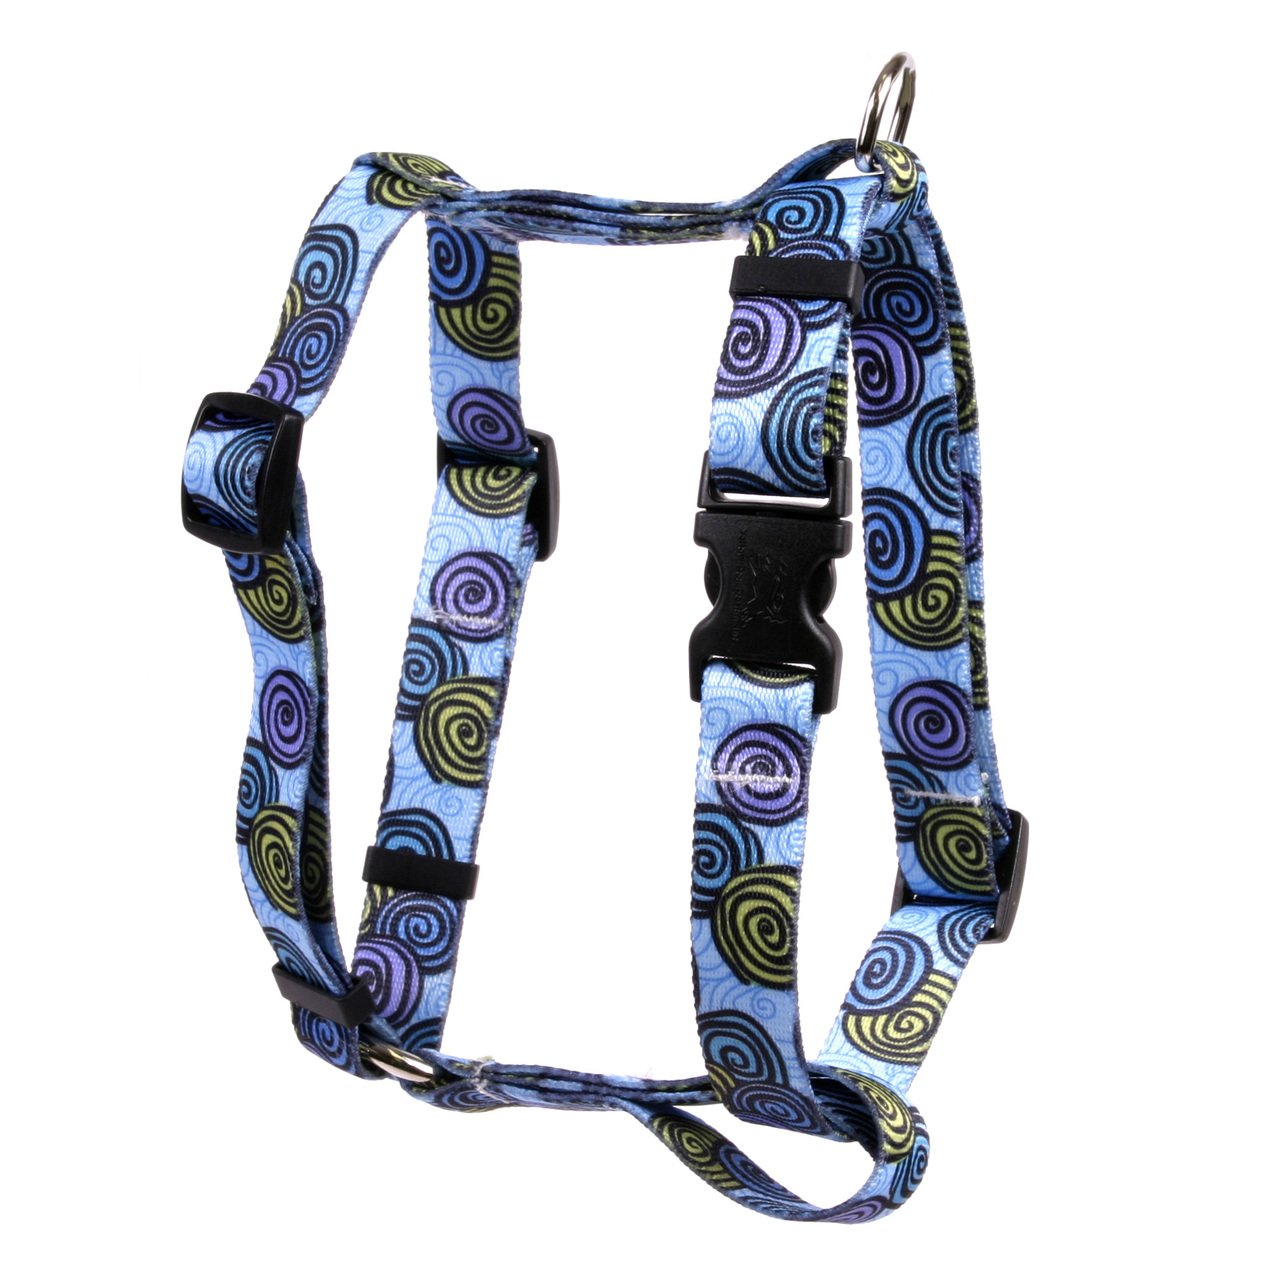 Yellow Dog Design Spirals Blue Roman Style H Dog Harness-X-Large-1'' and fits Chest Circumference of 28 to 36''